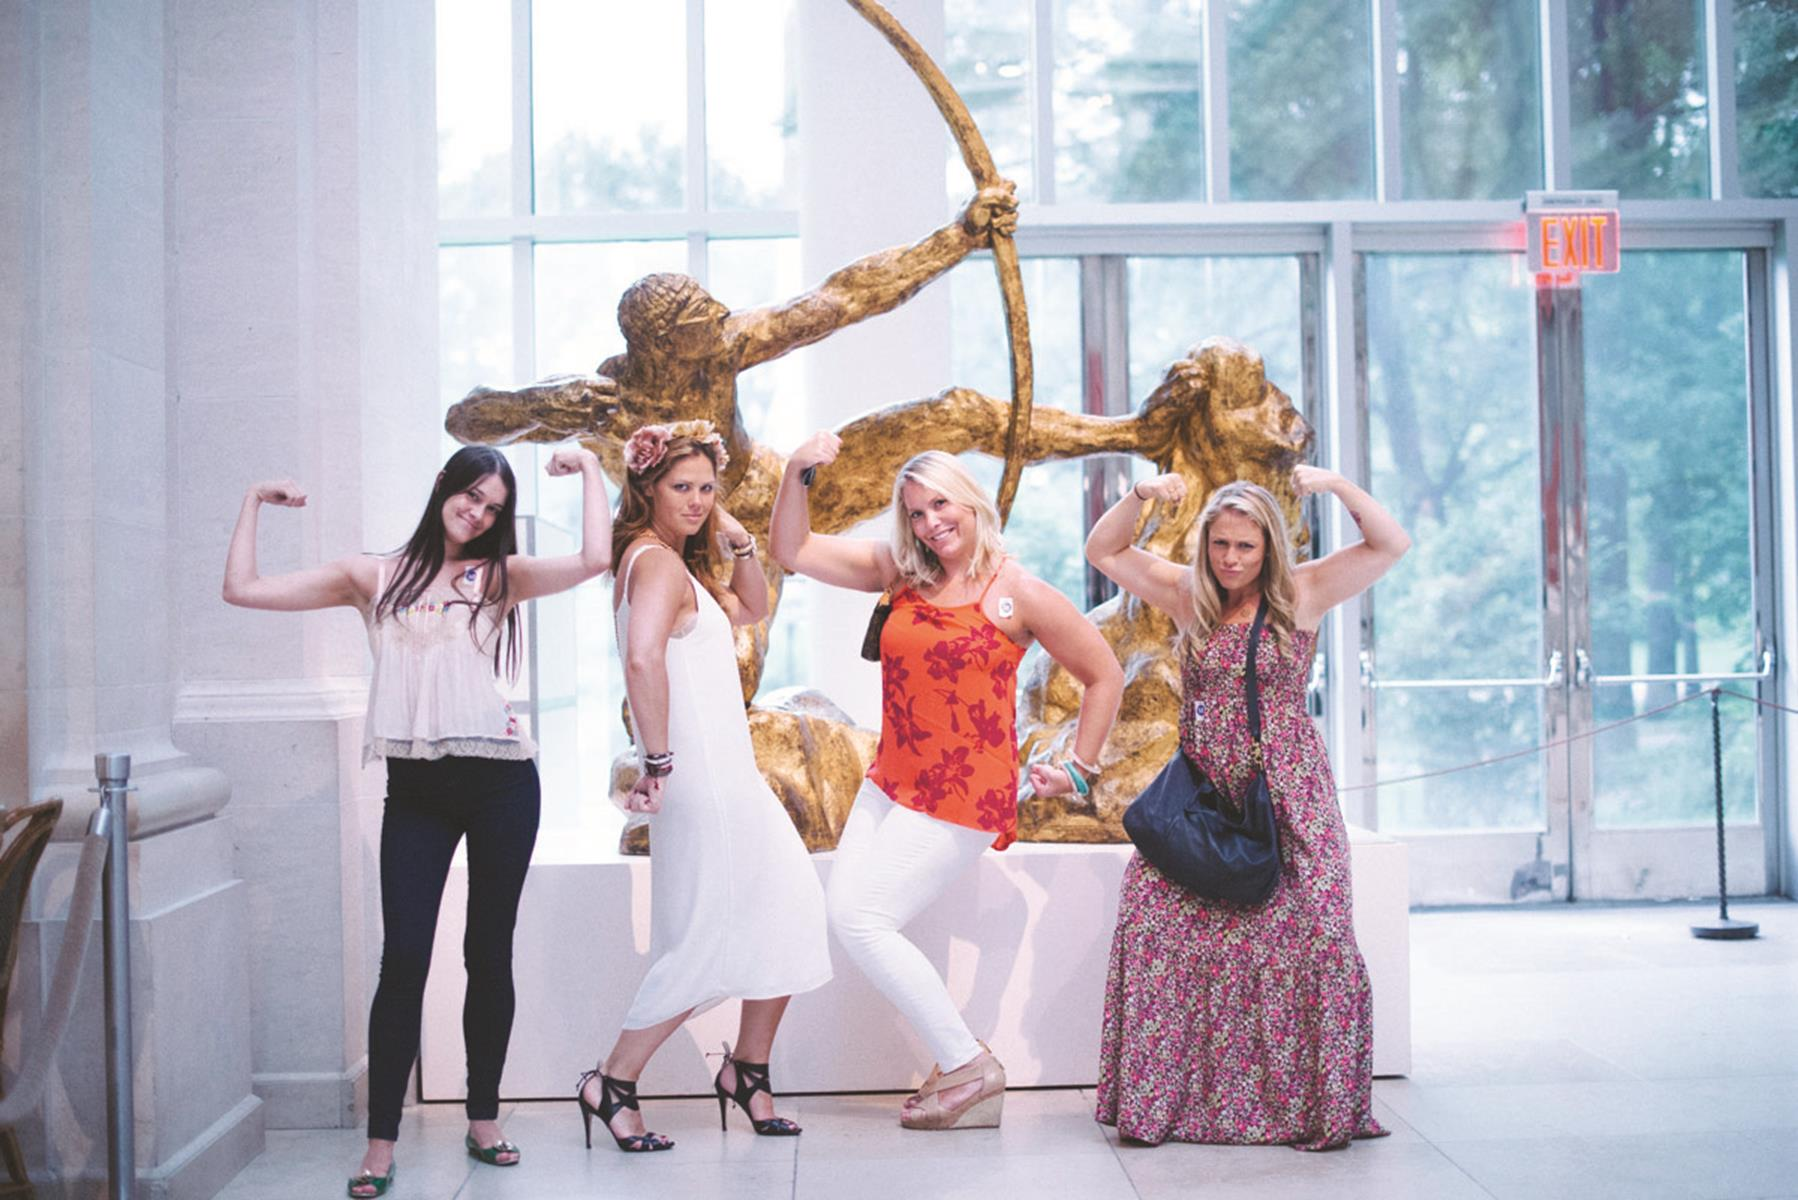 A bachelorette party poses with the art